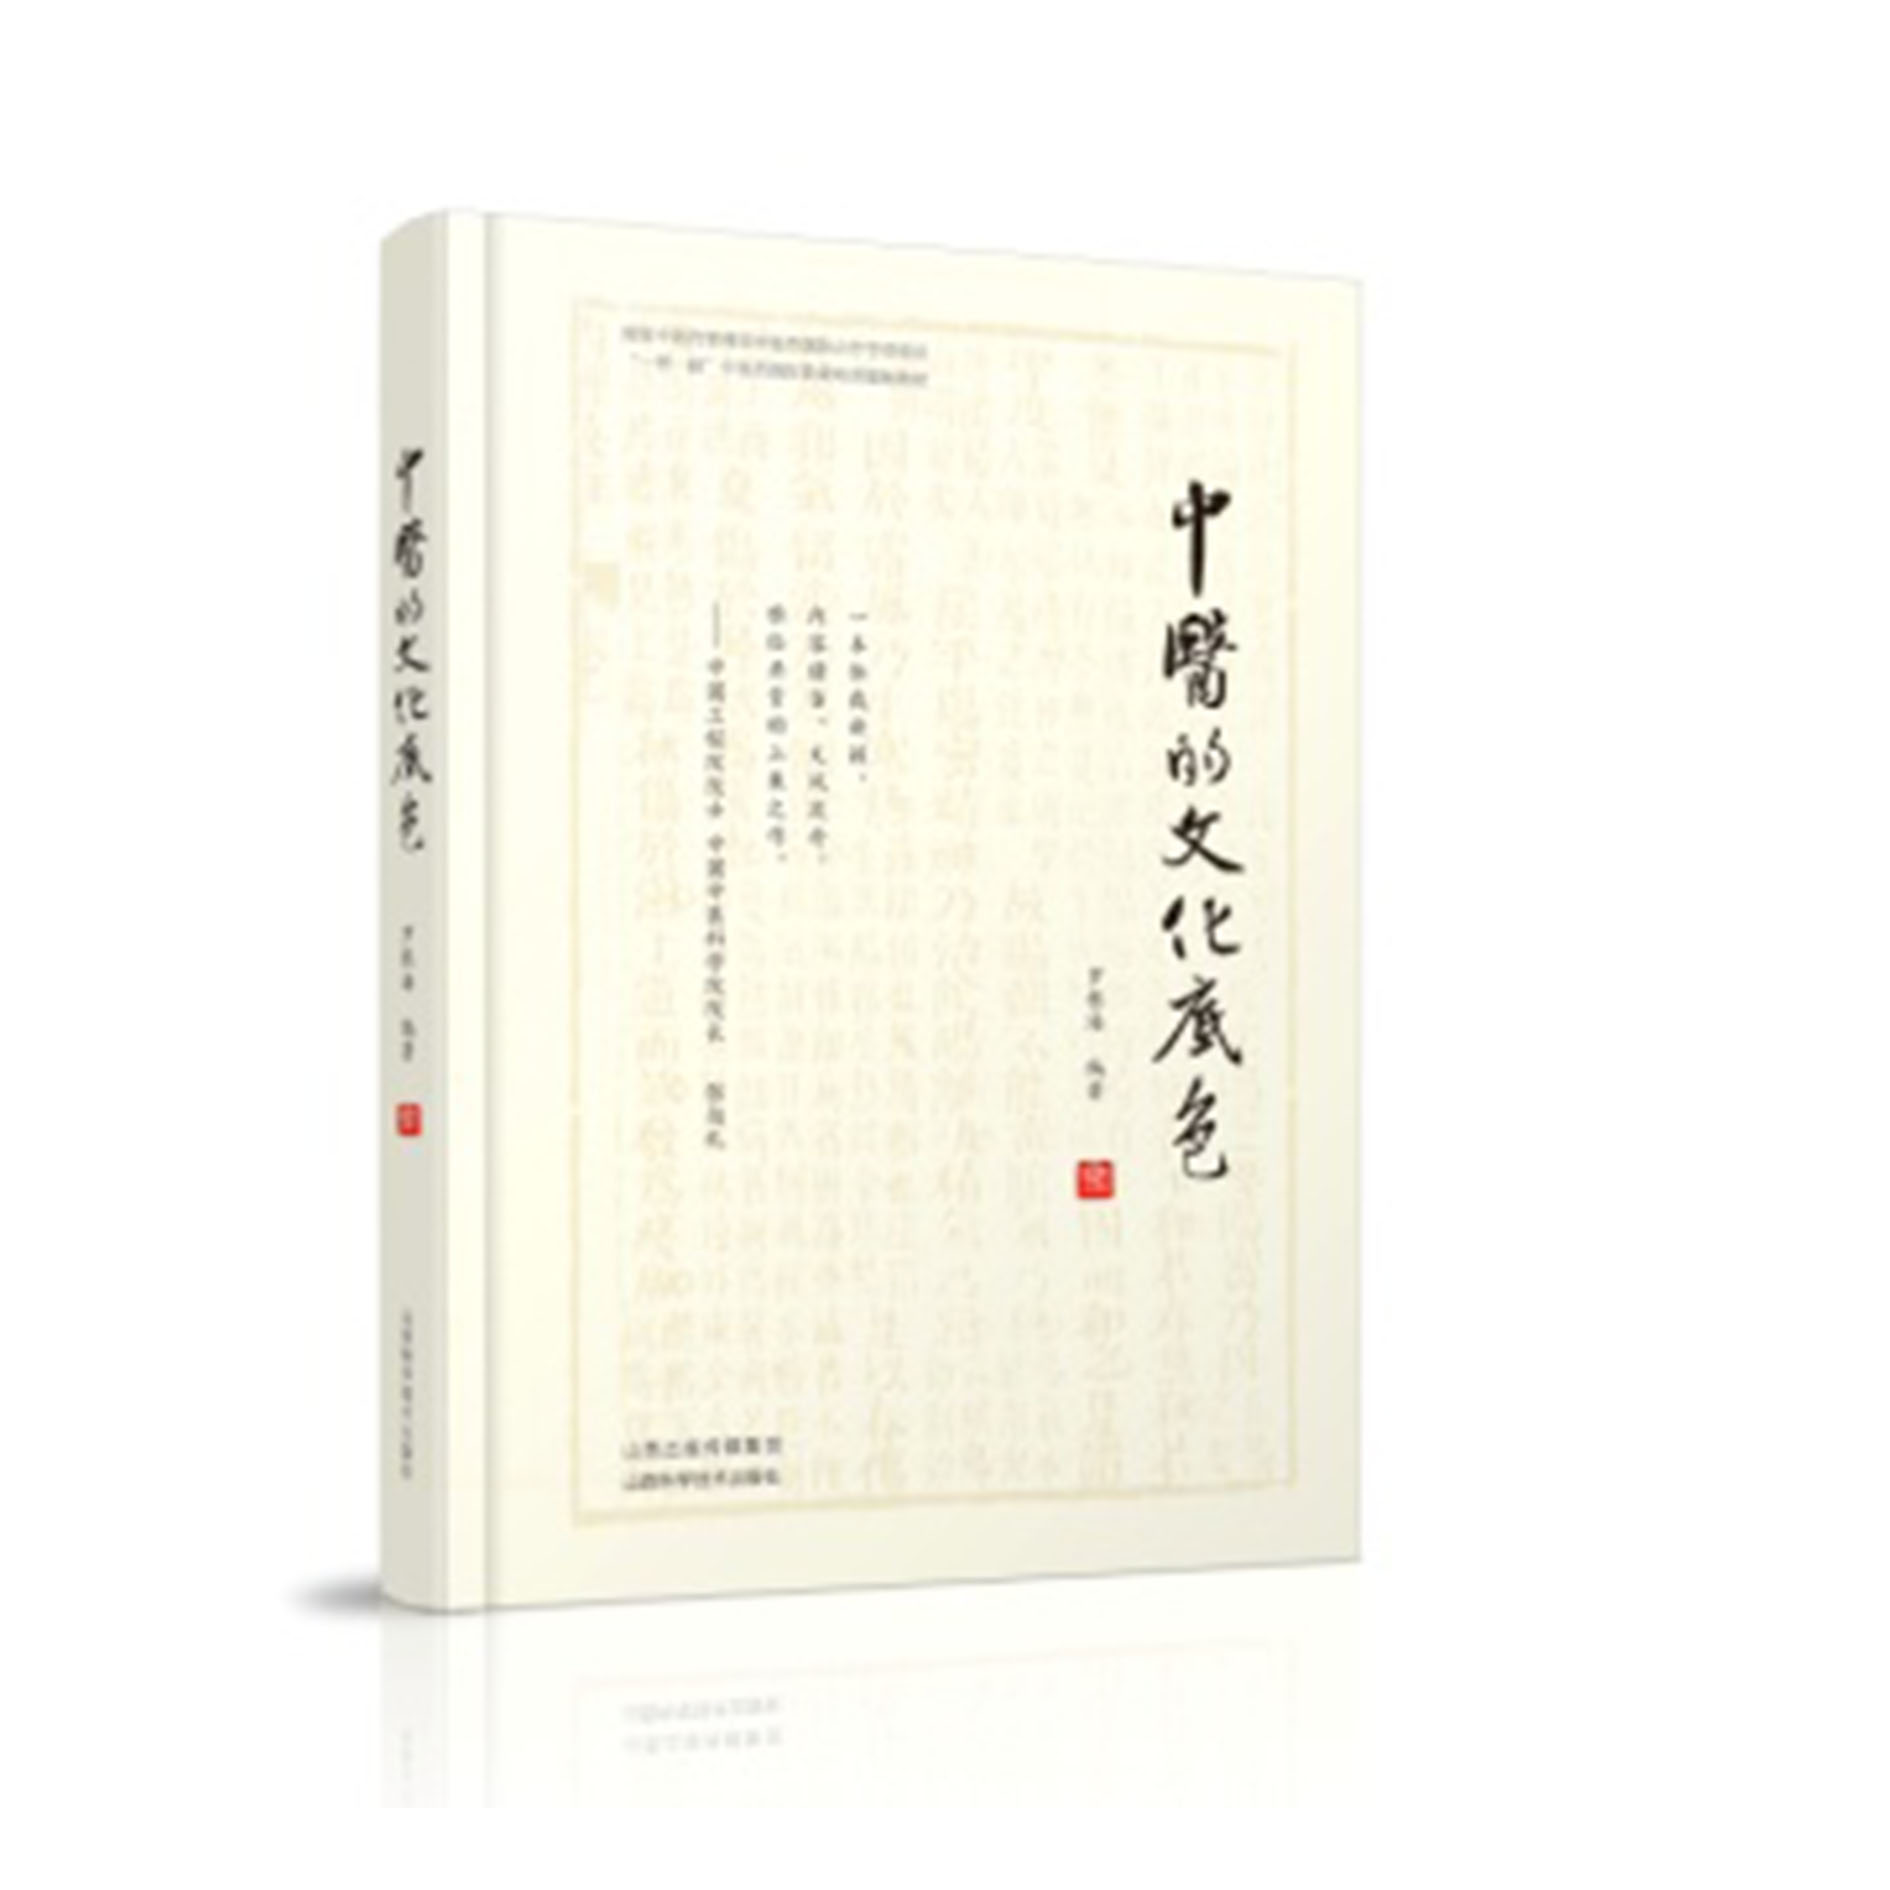 The Culture Background of the Traditional Chinese Medicine